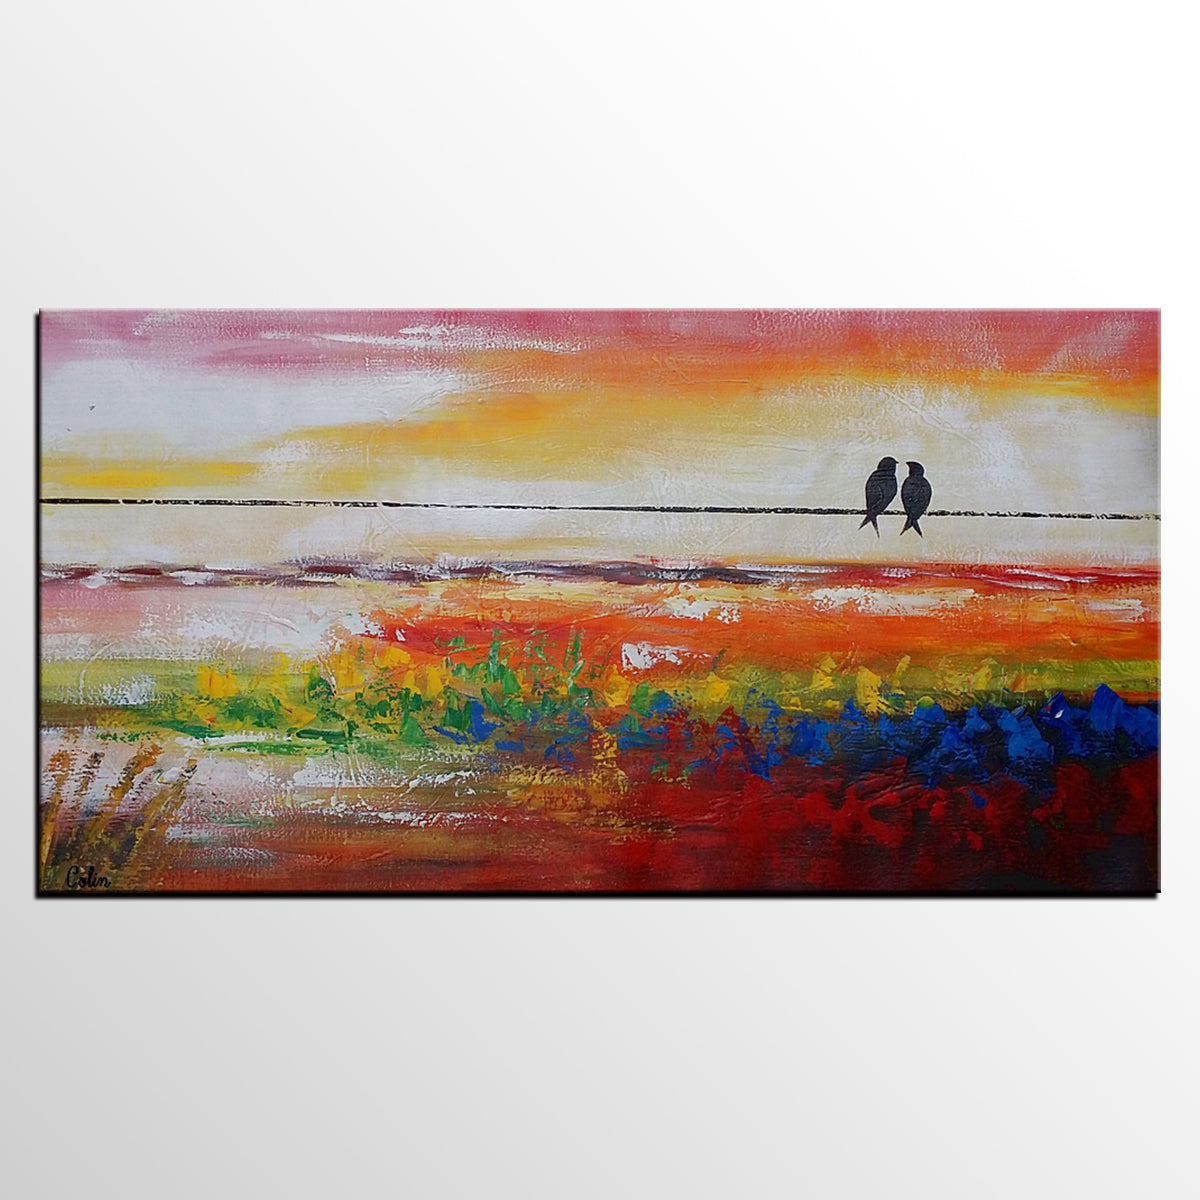 Wall Art, Living Room Wall Art, Canvas Art, Original Art, Love Birds Painting, Abstract Painting, Abstract Art, Canvas Painting, 435 - artworkcanvas